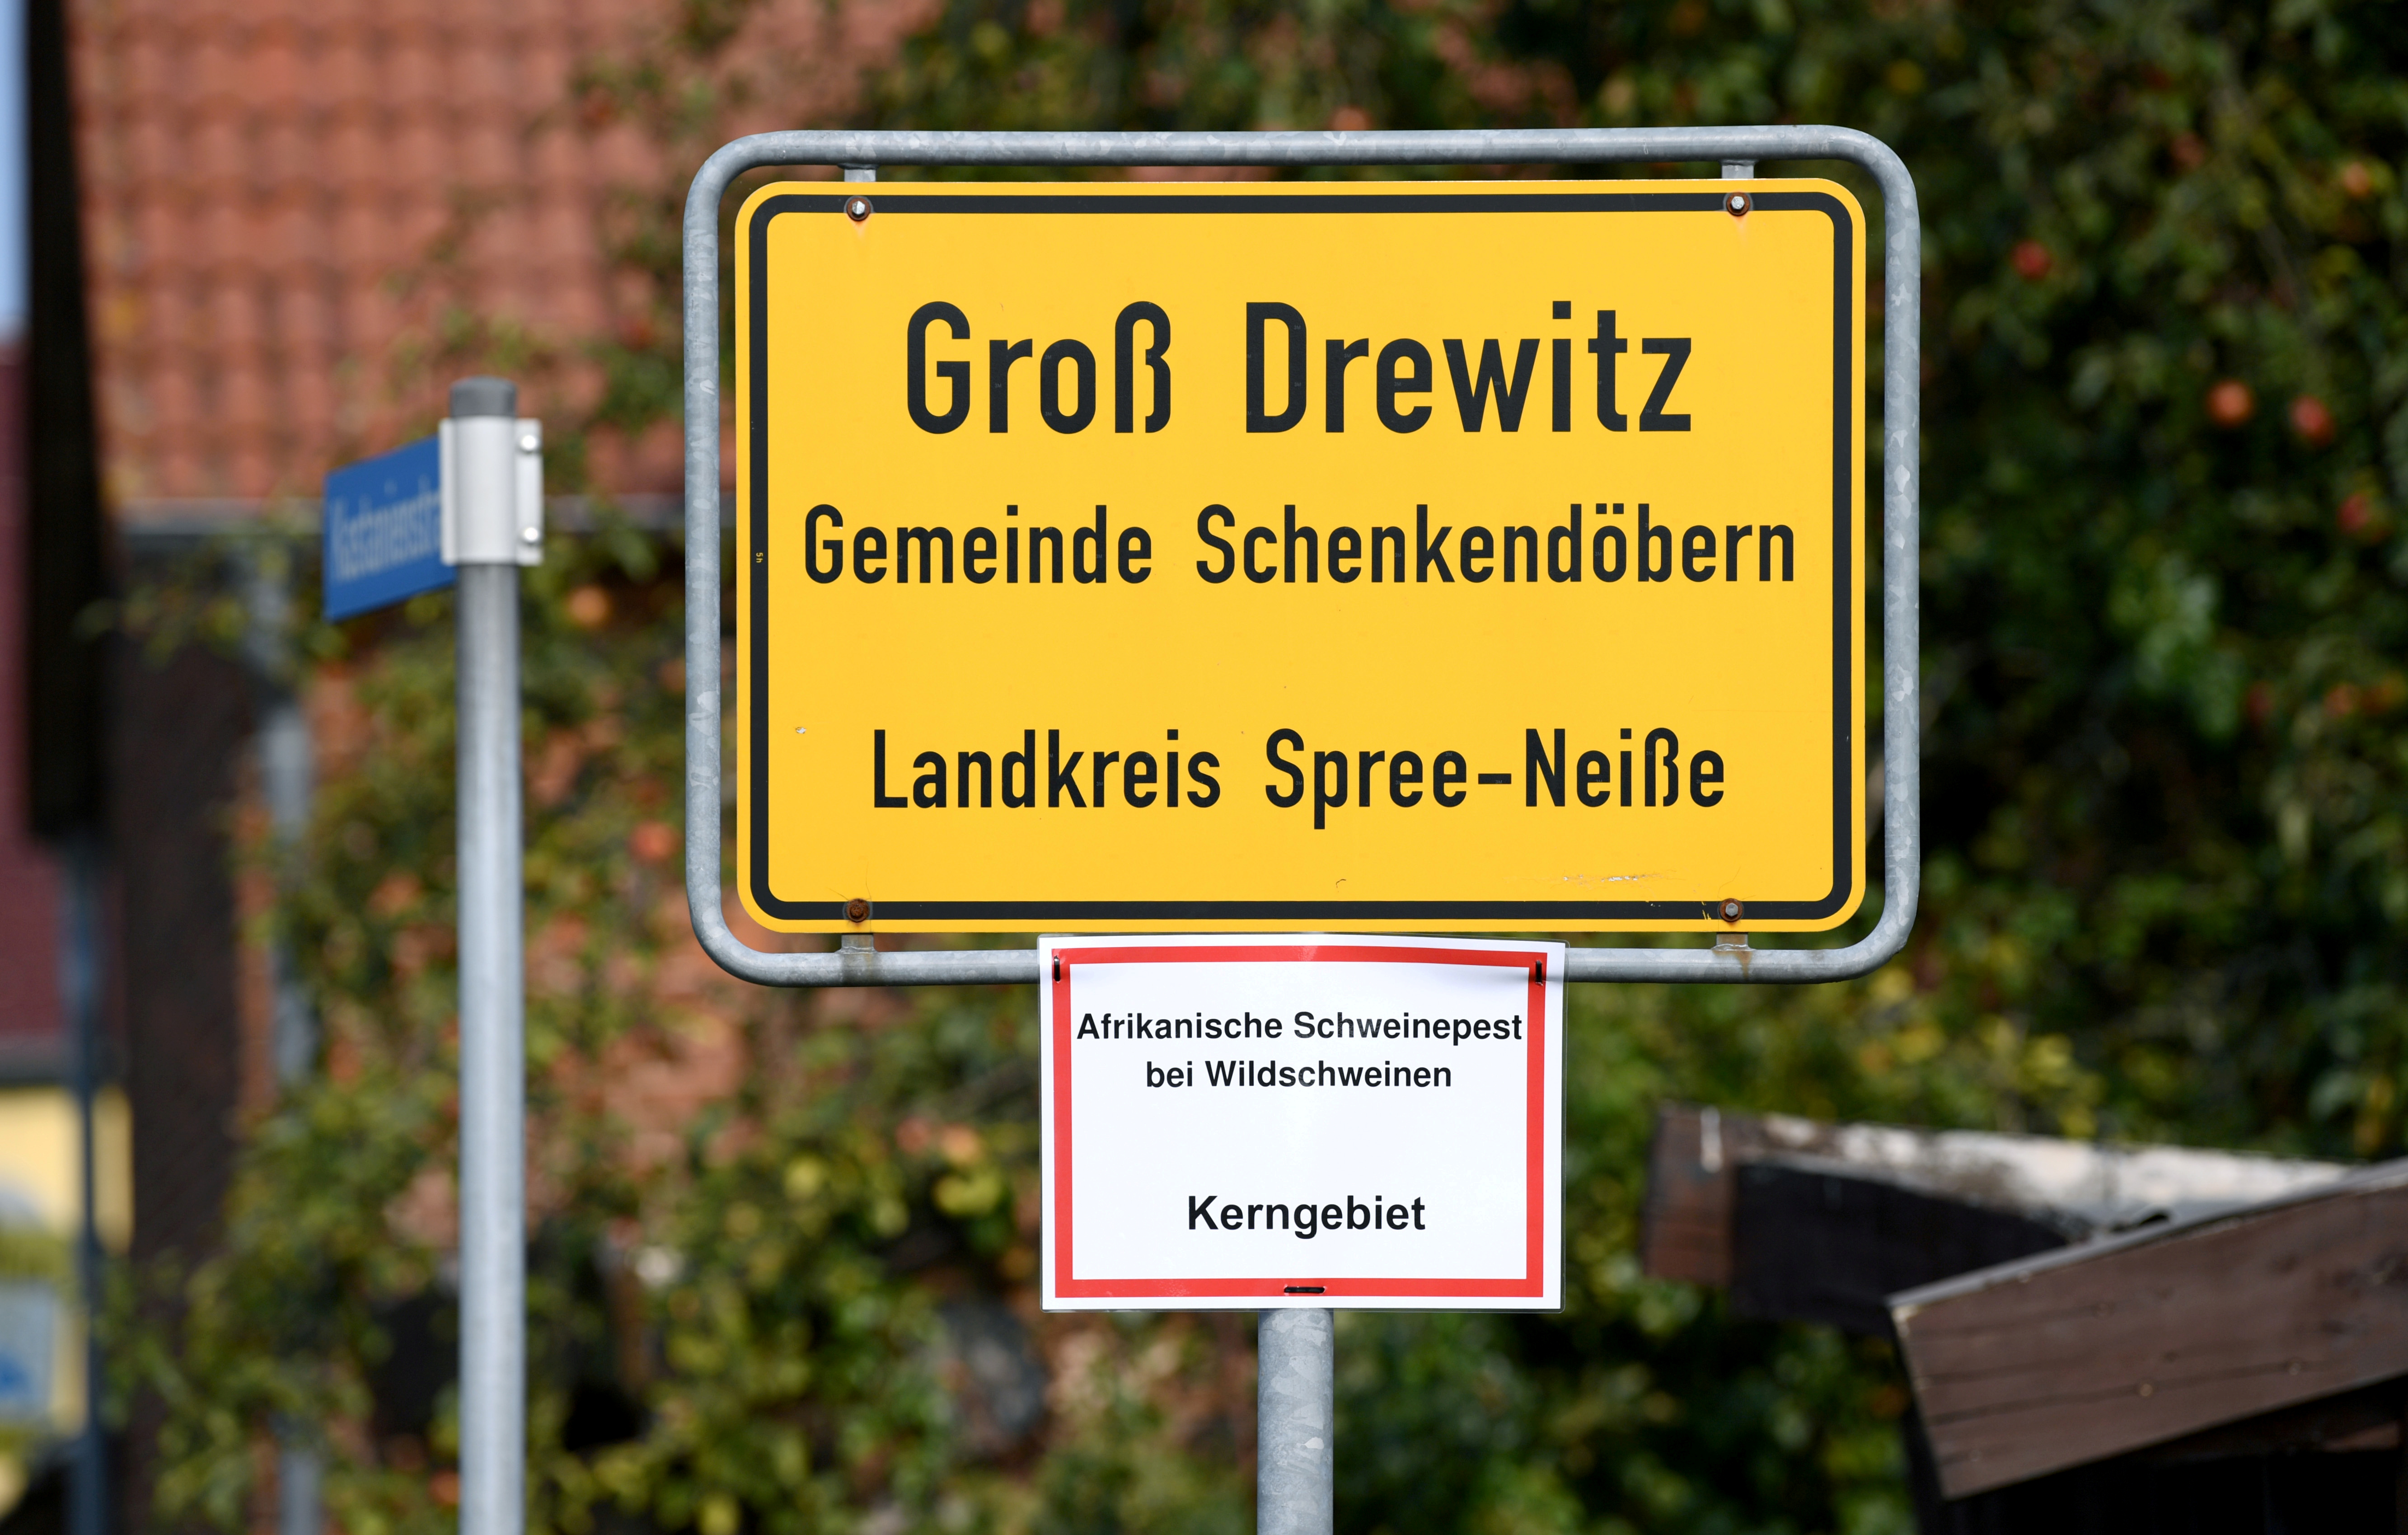 The town sign of Gross Drewitz is seen with a note reading